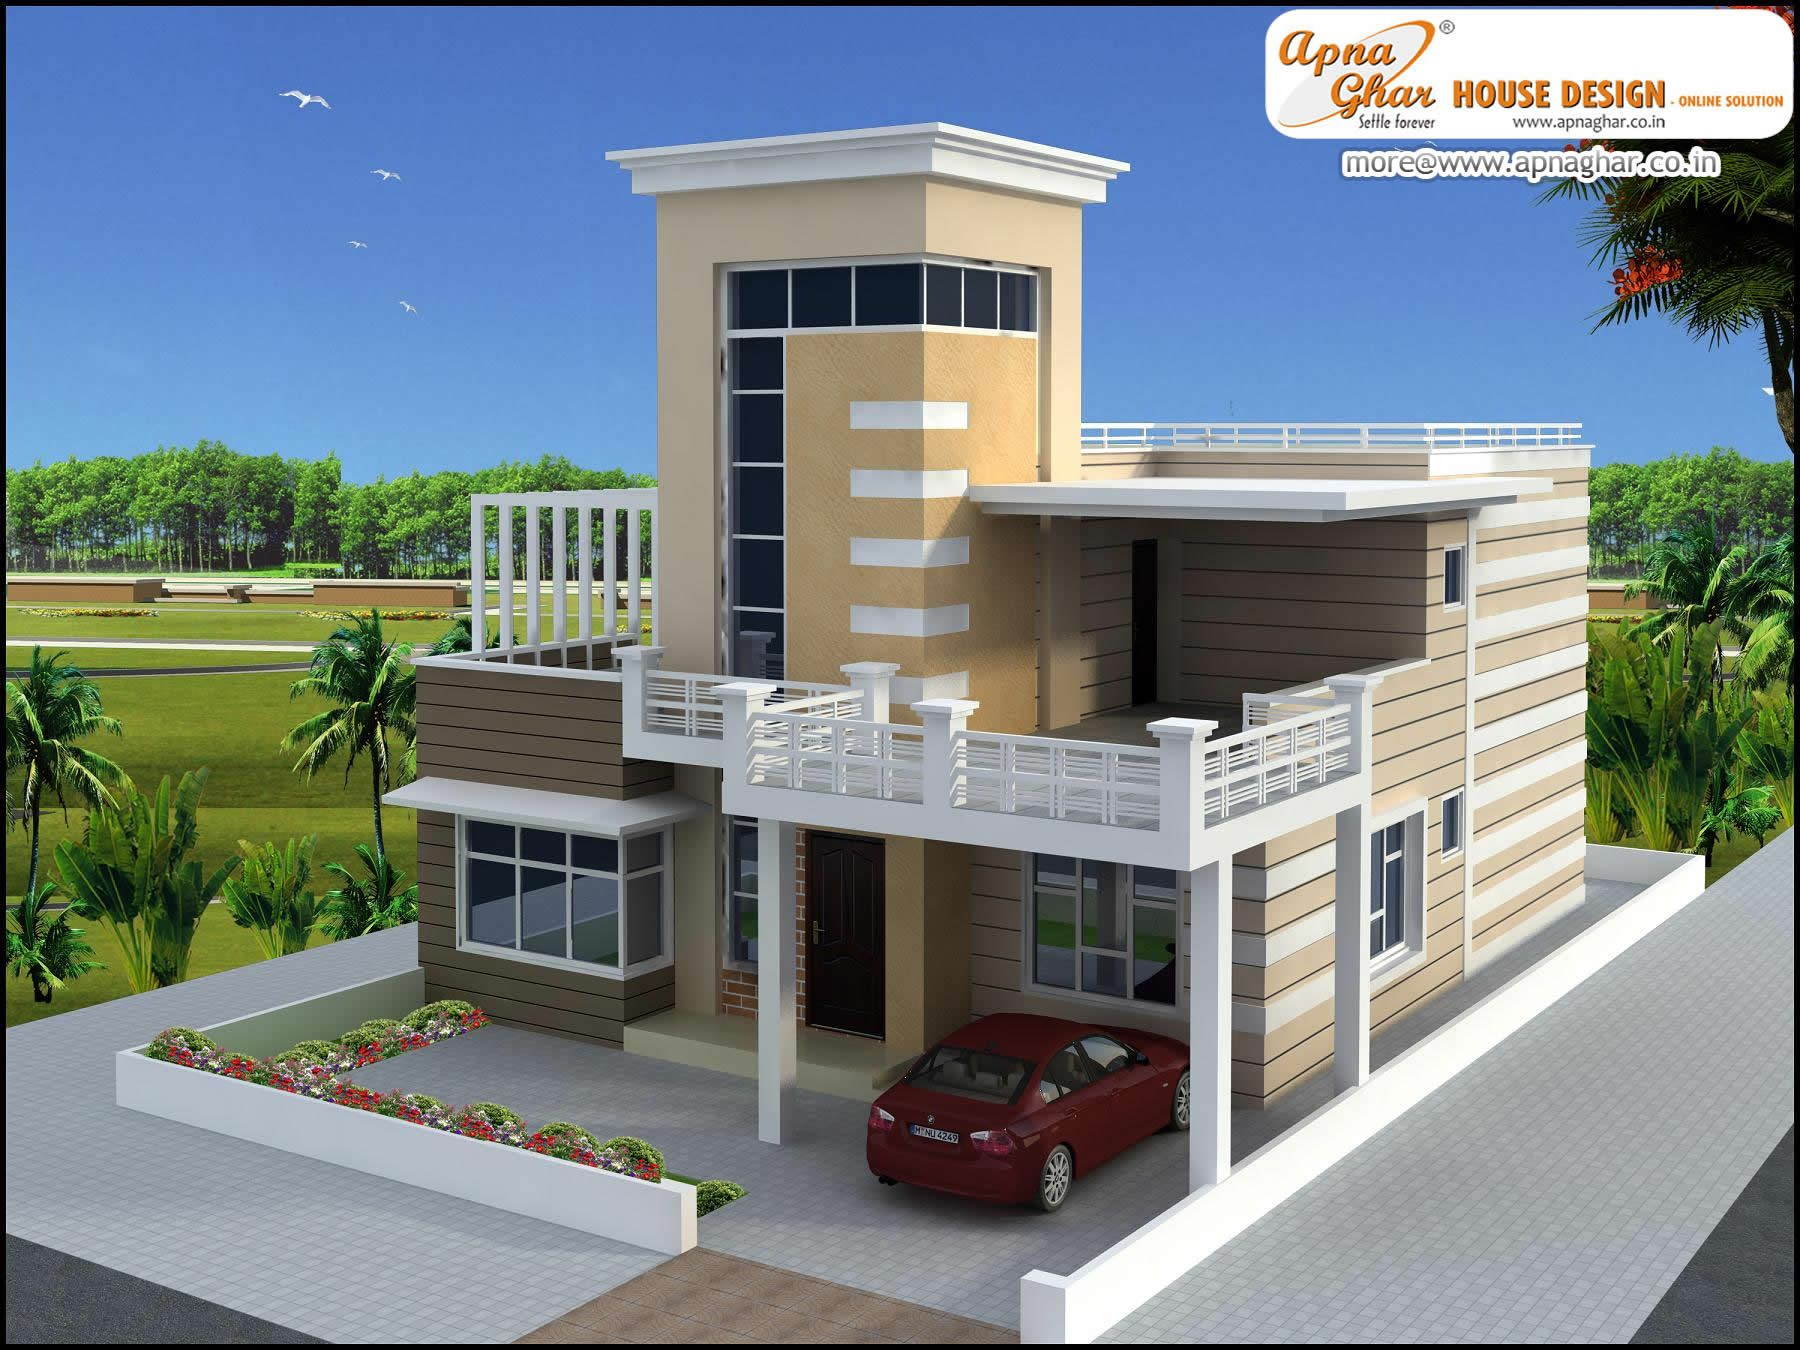 Luxury duplex 2 floors house design area 252m2 21m x Modern house company